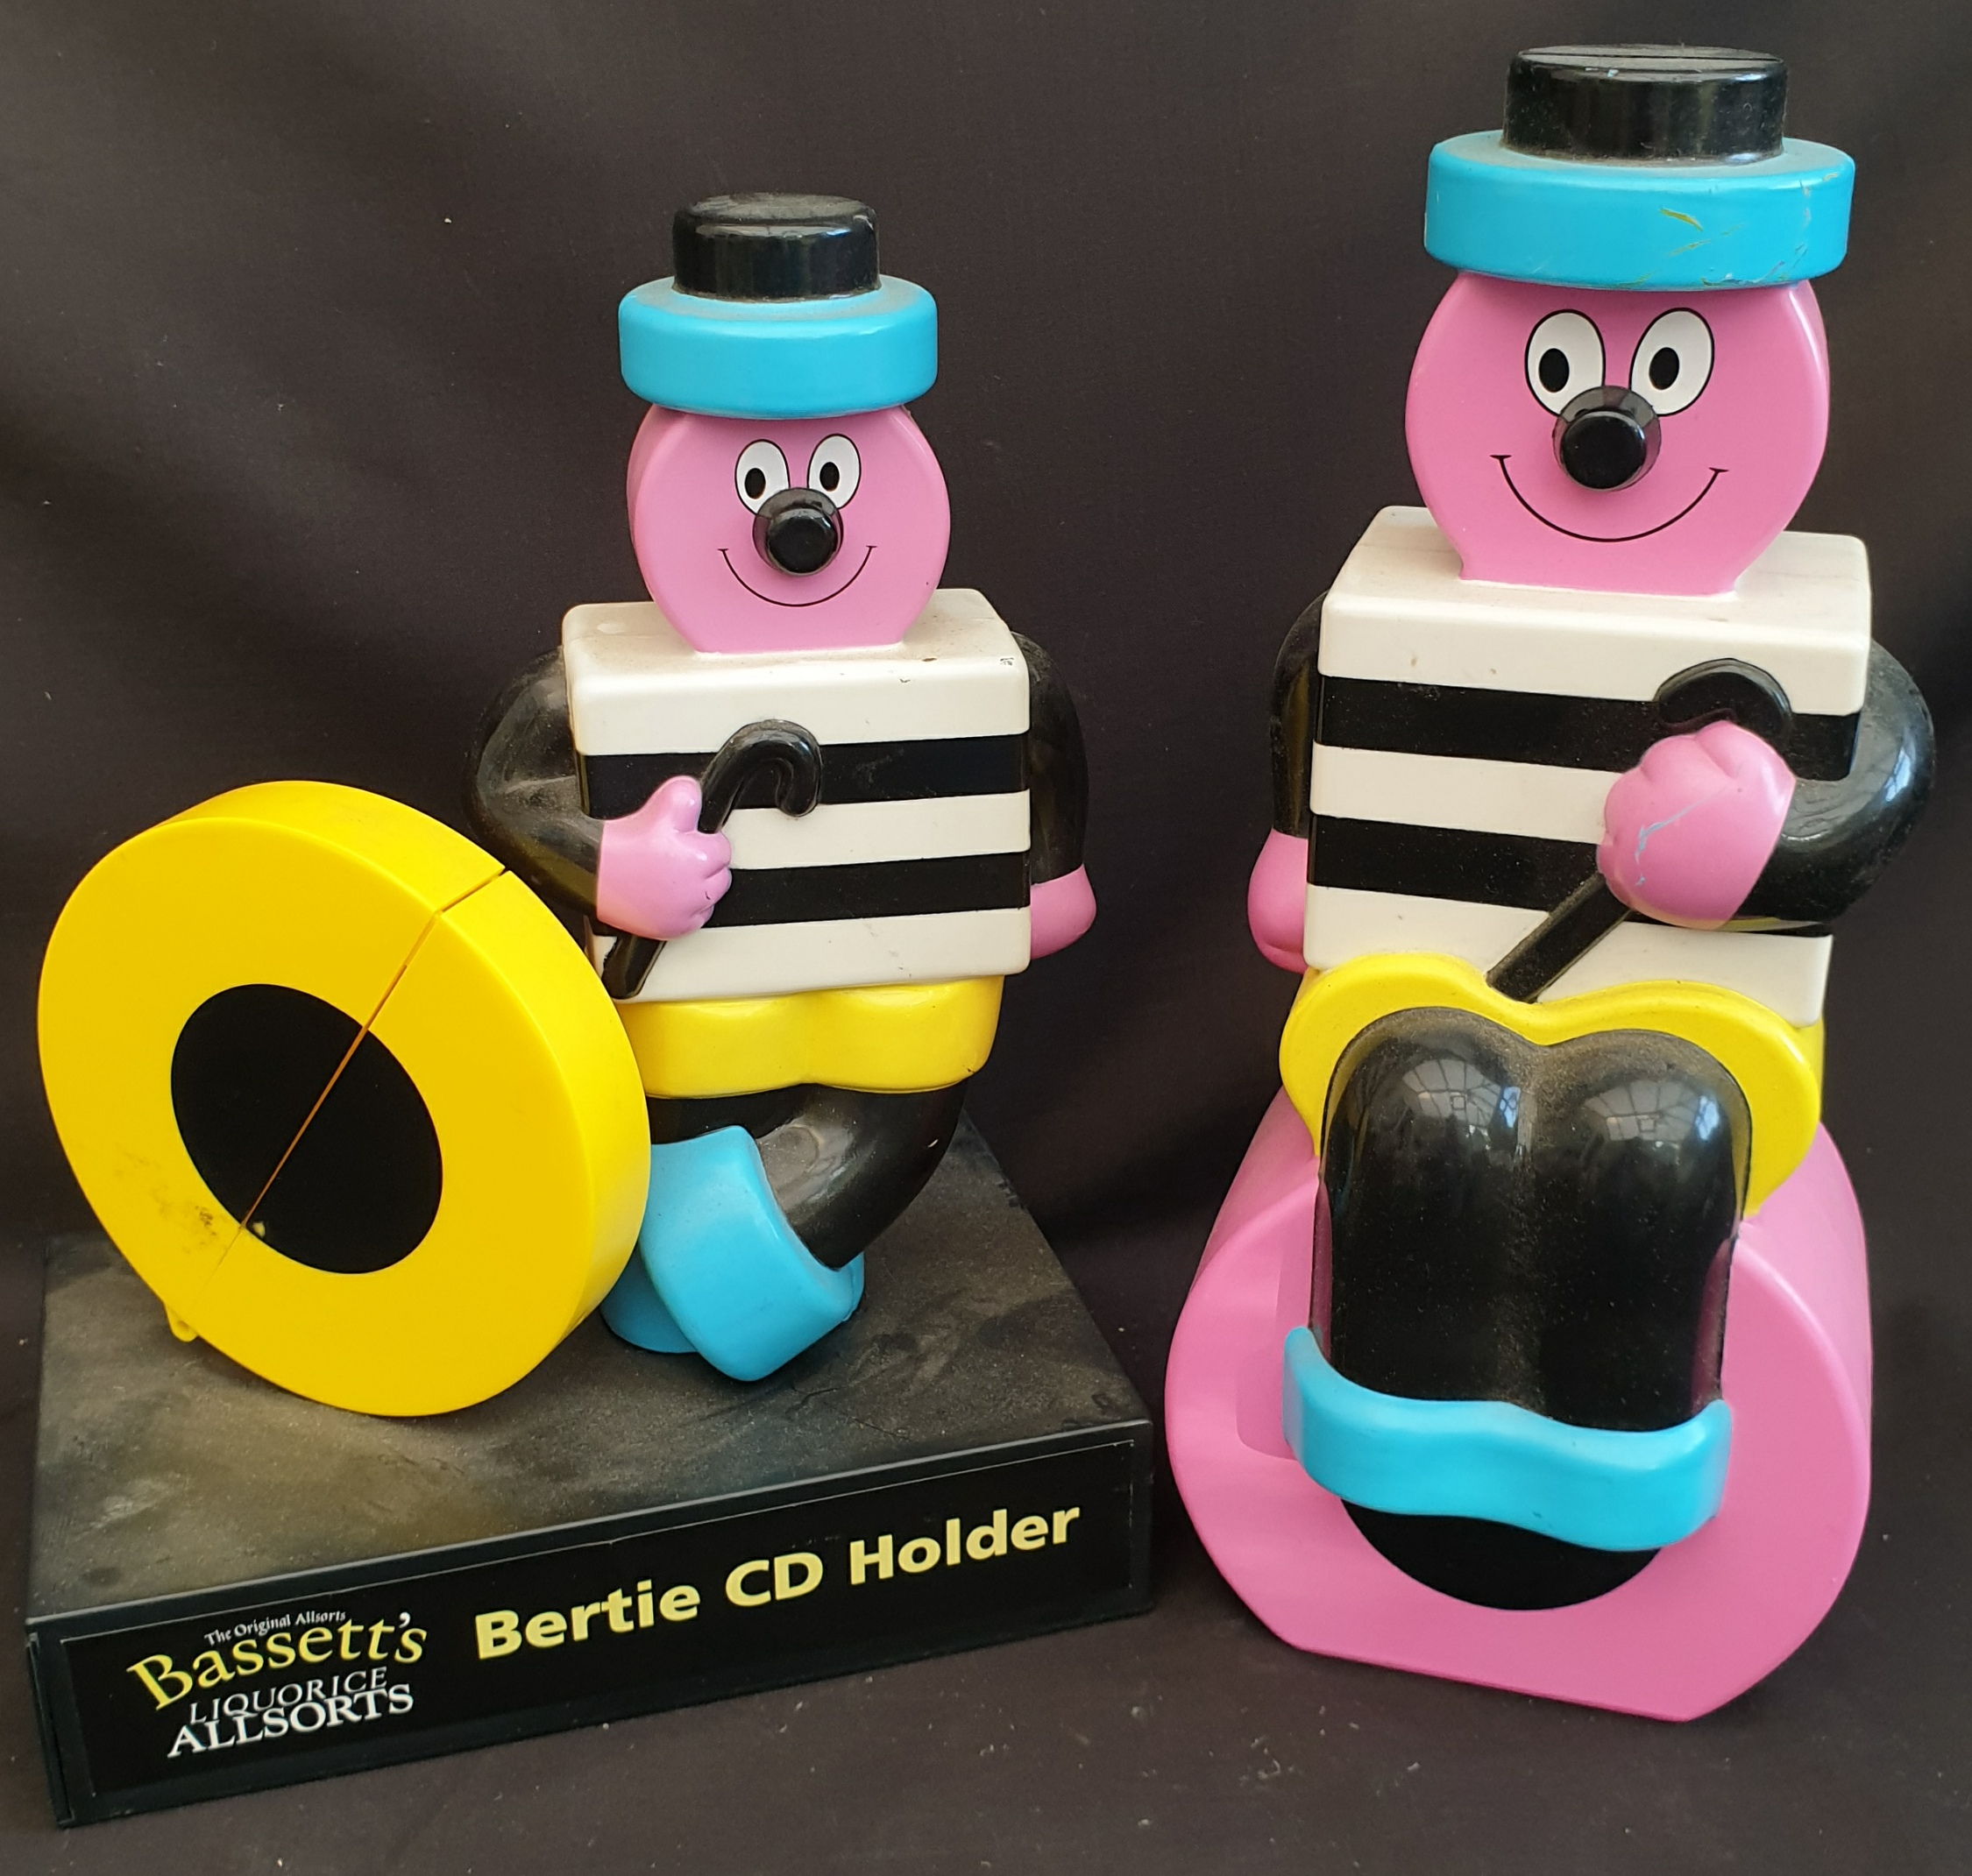 Novelty Bassett's Allsorts Money Box & CD Holder